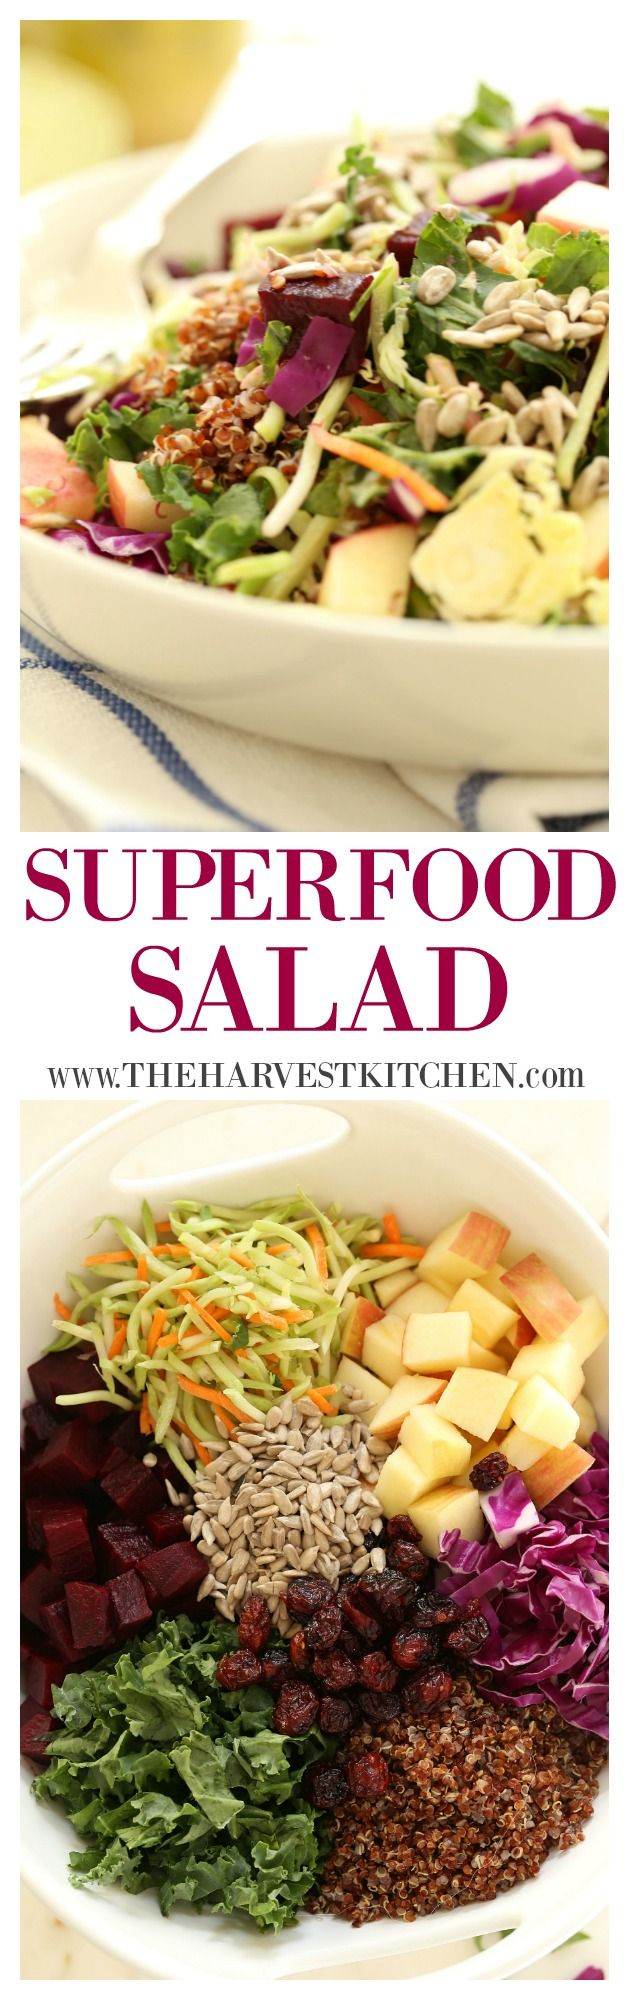 This Superfood Salad is loaded with curly kale, crunchy broccoli slaw, cabbage, shaved brussel sprouts, apples and sunflower seeds, as well as protein-dense quinoa, small bites of beets and chewy dried cranberries. It's all tossed in a delicious honey lime salad dressing.  Healthy recipe @theharvestkitchen.com